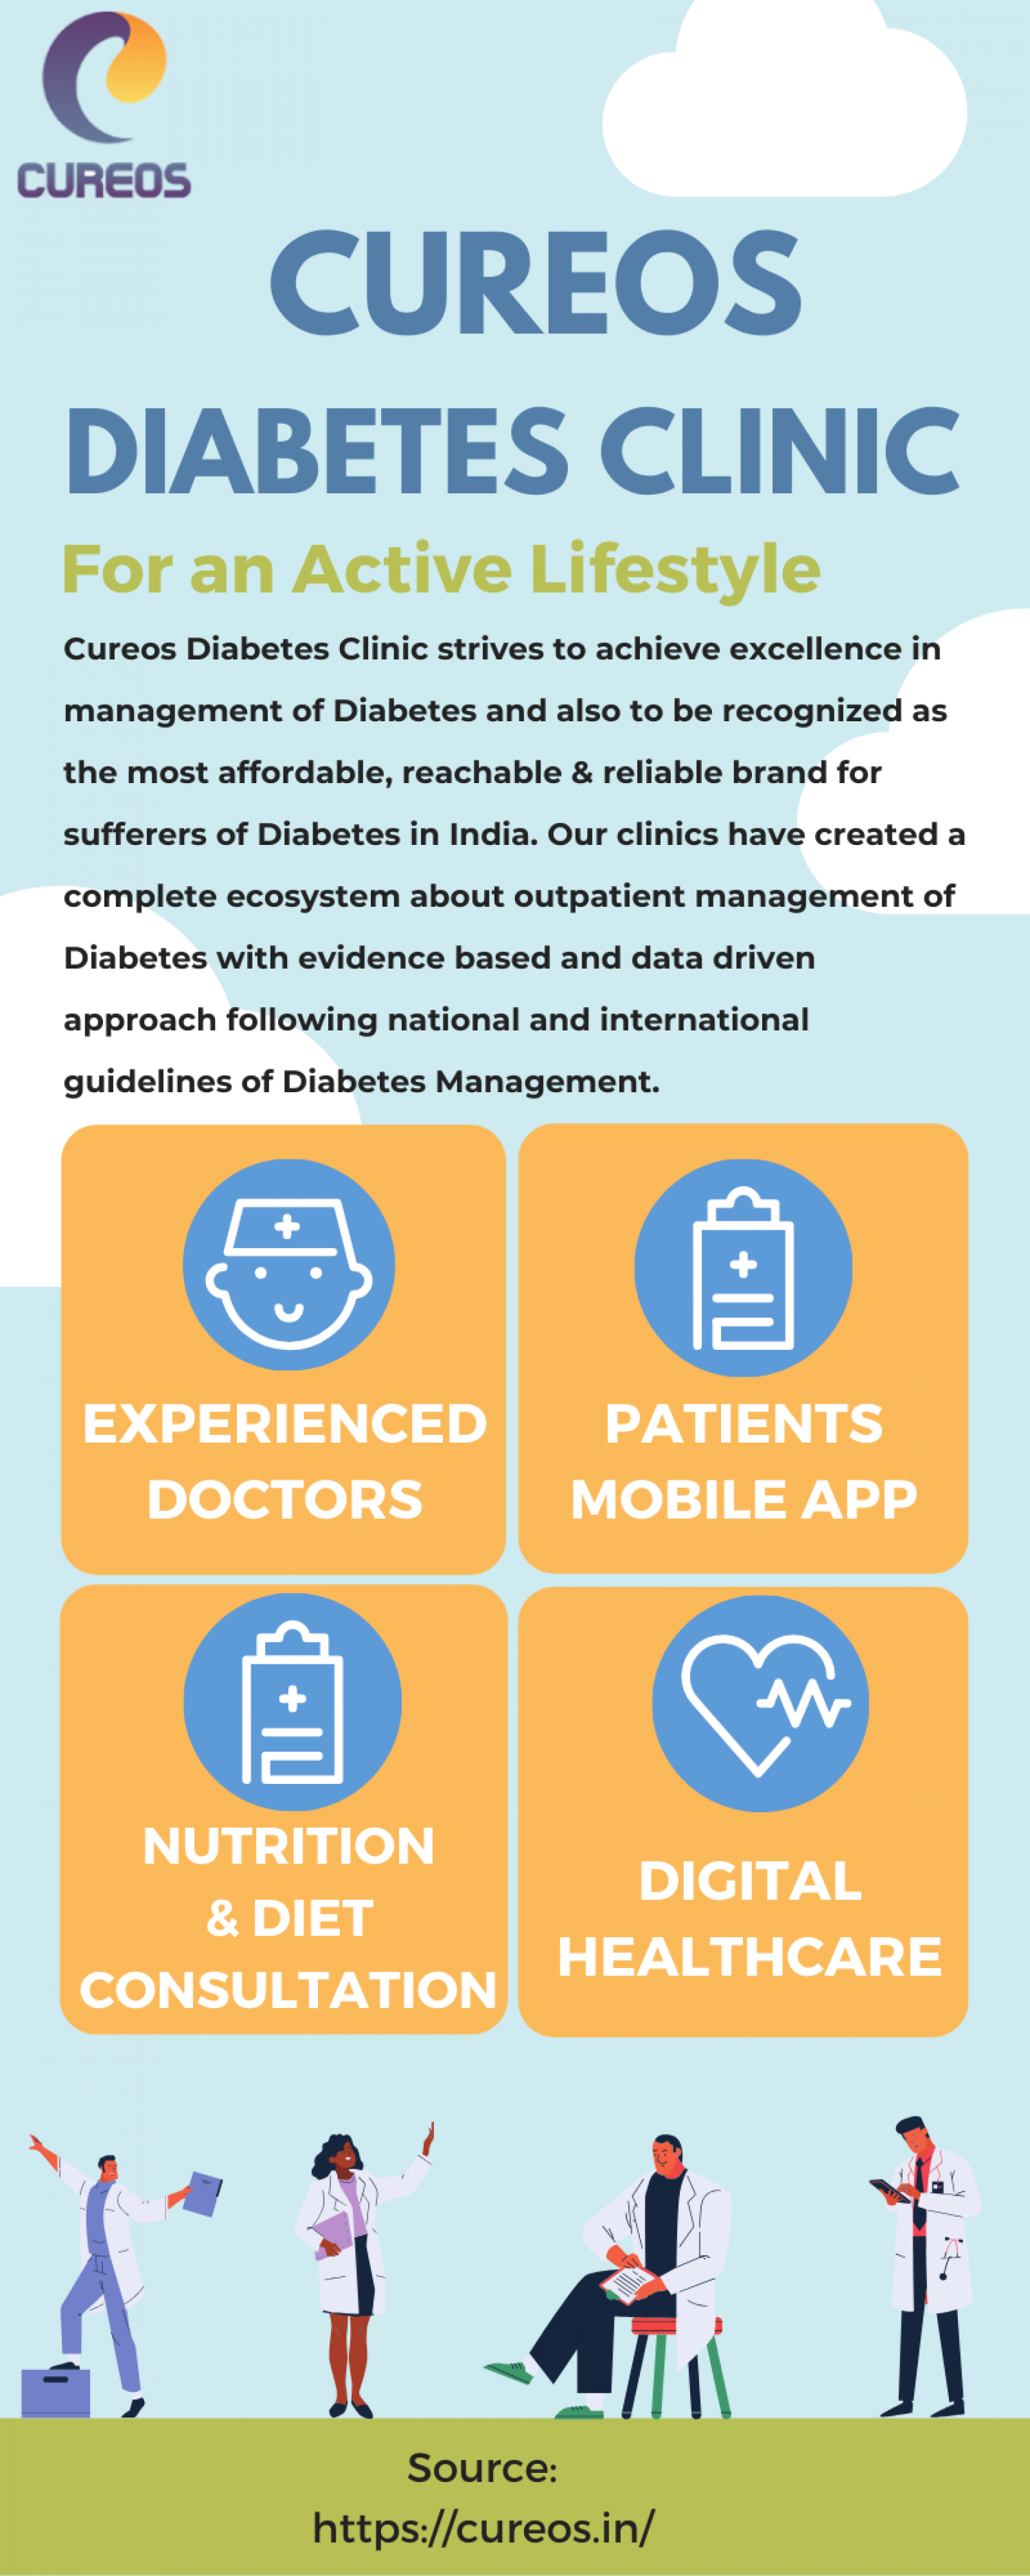 Cureos Diabetes Clinics Infographic